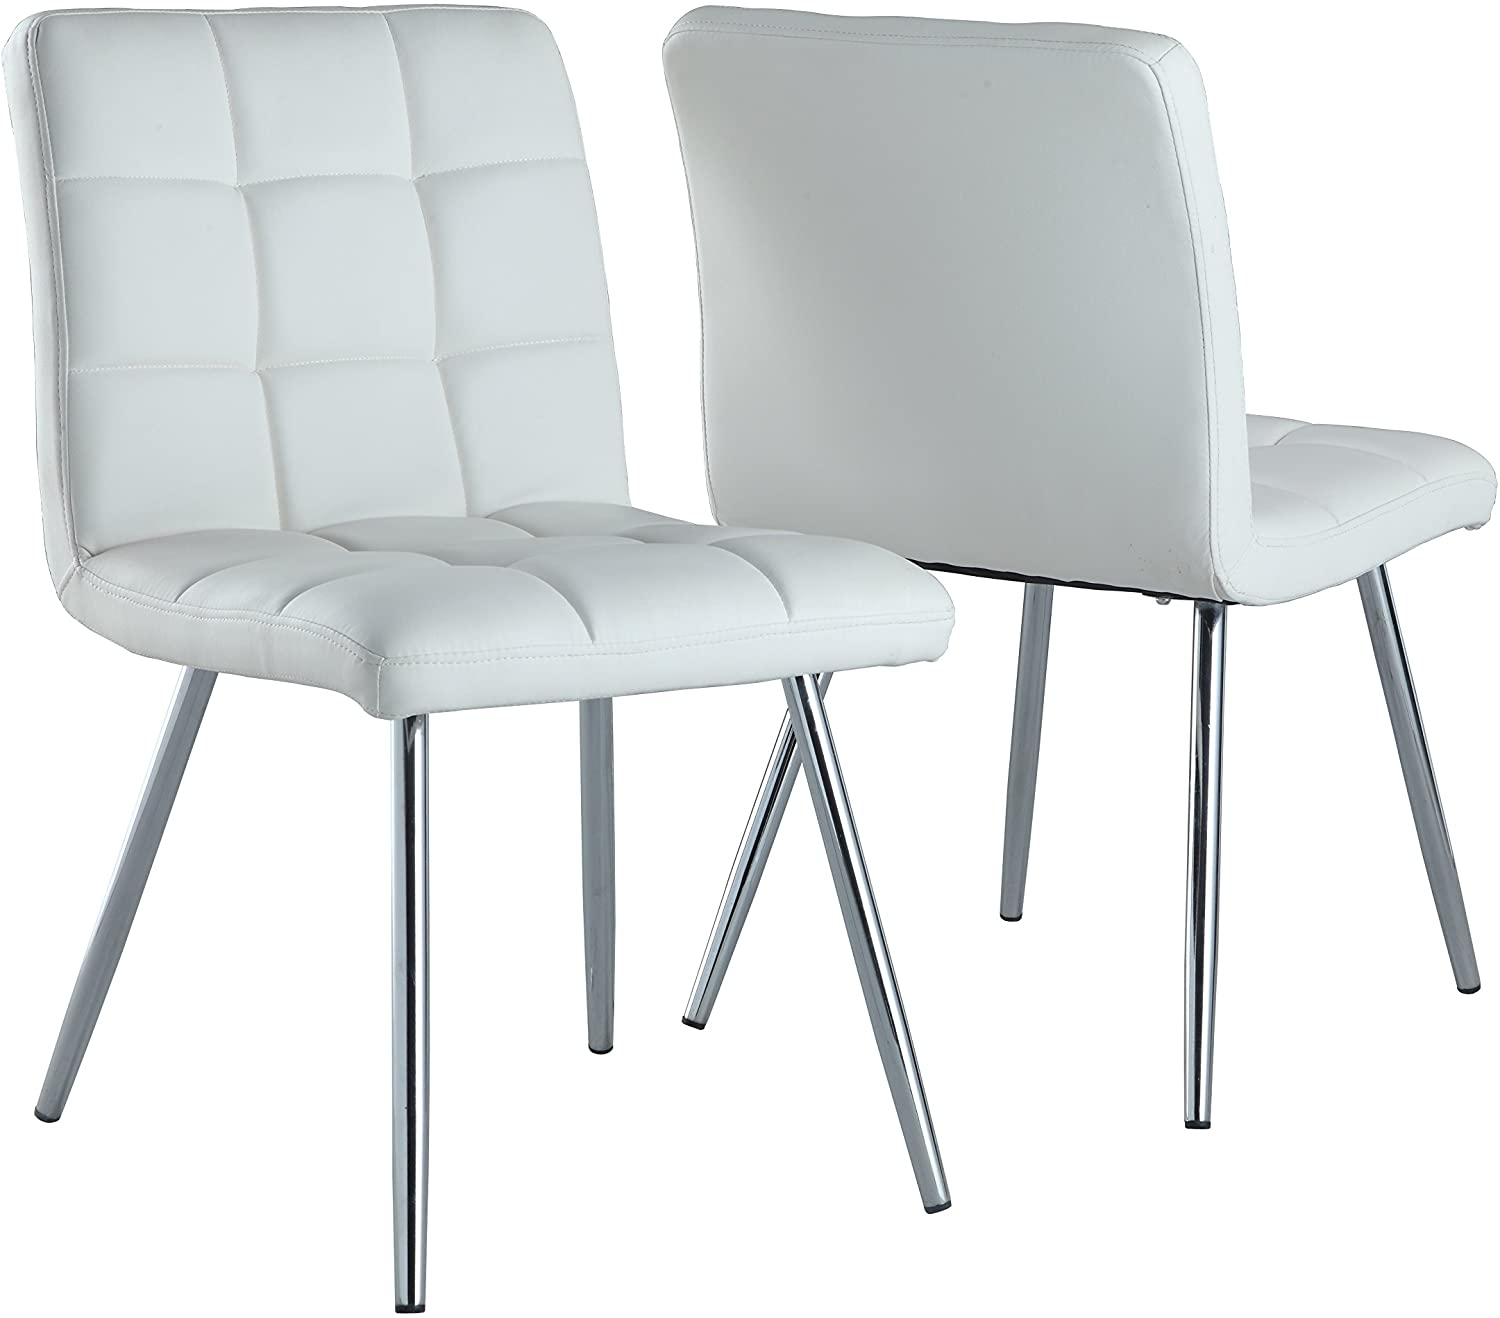 Amazon Com Monarch Specialties White Leather Look Chrome Metal 2 Piece Dining Chair 32 Inch Chairs